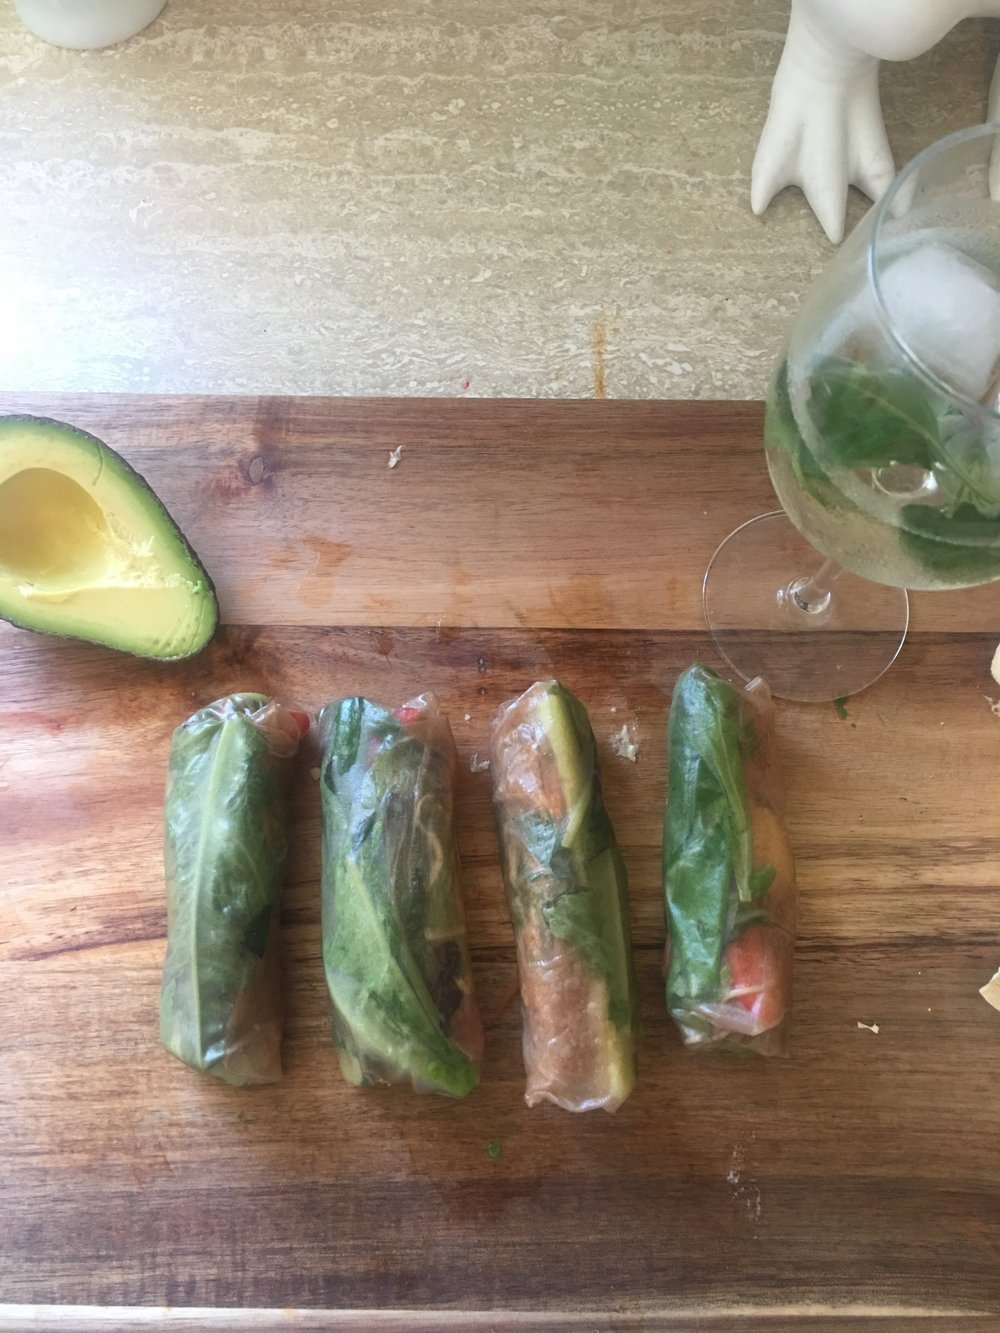 The counterpart to my gas station indulgence. Veggie spring rolls in a brown rice paper wrap. We used lettuce and dill from the garden and added lots of hummus and avo to smooth out the crunchy carrots, and peppers. So good and SO filling.